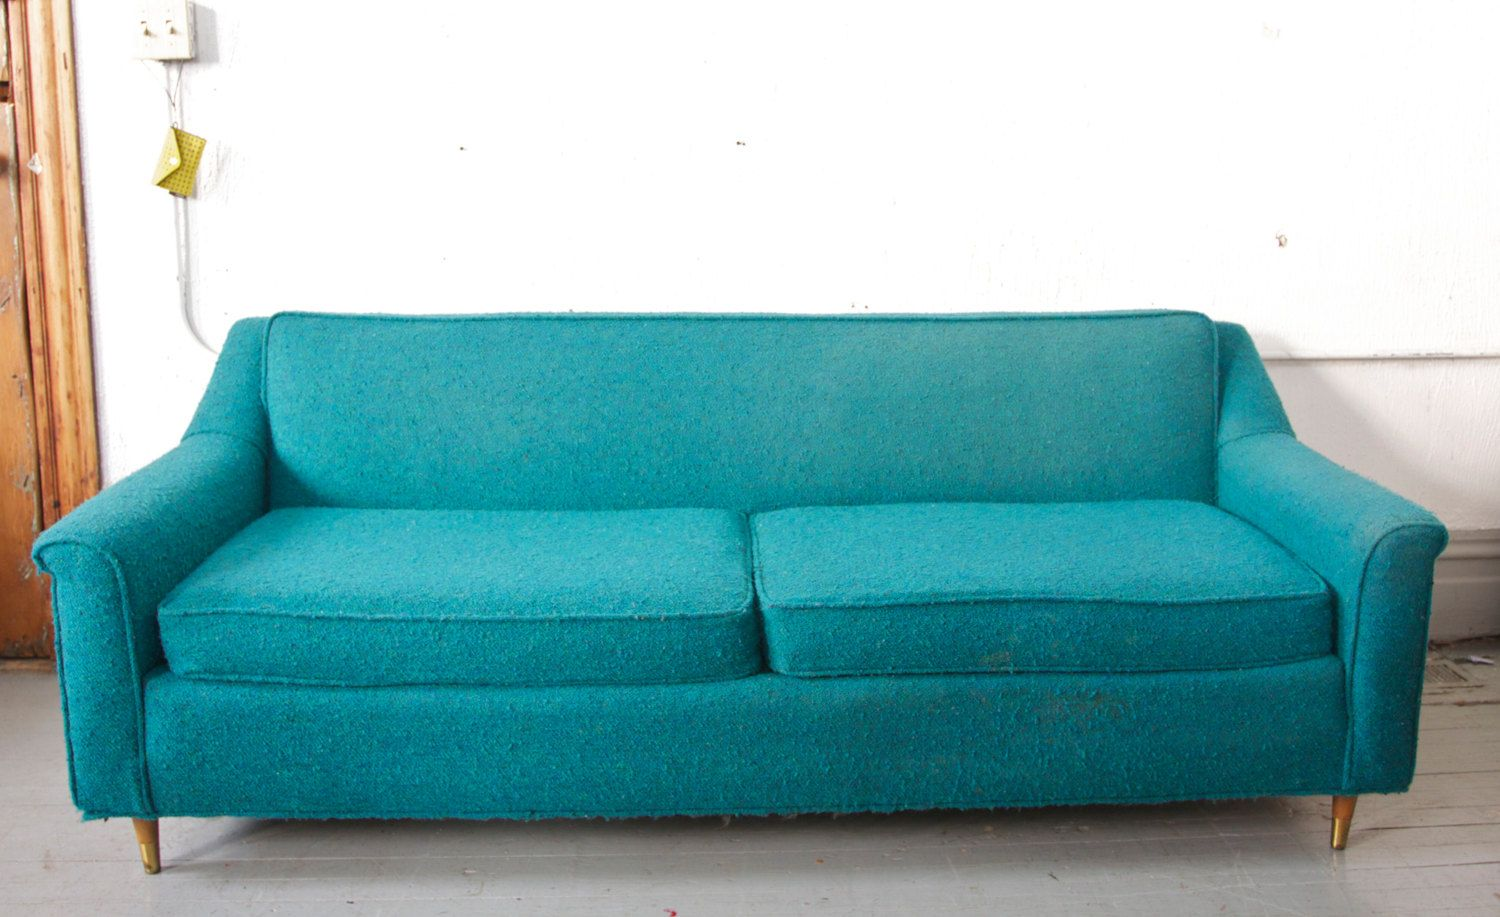 modern retro sofa and loveseat buchanan slipcover mid century teal turquoise couch